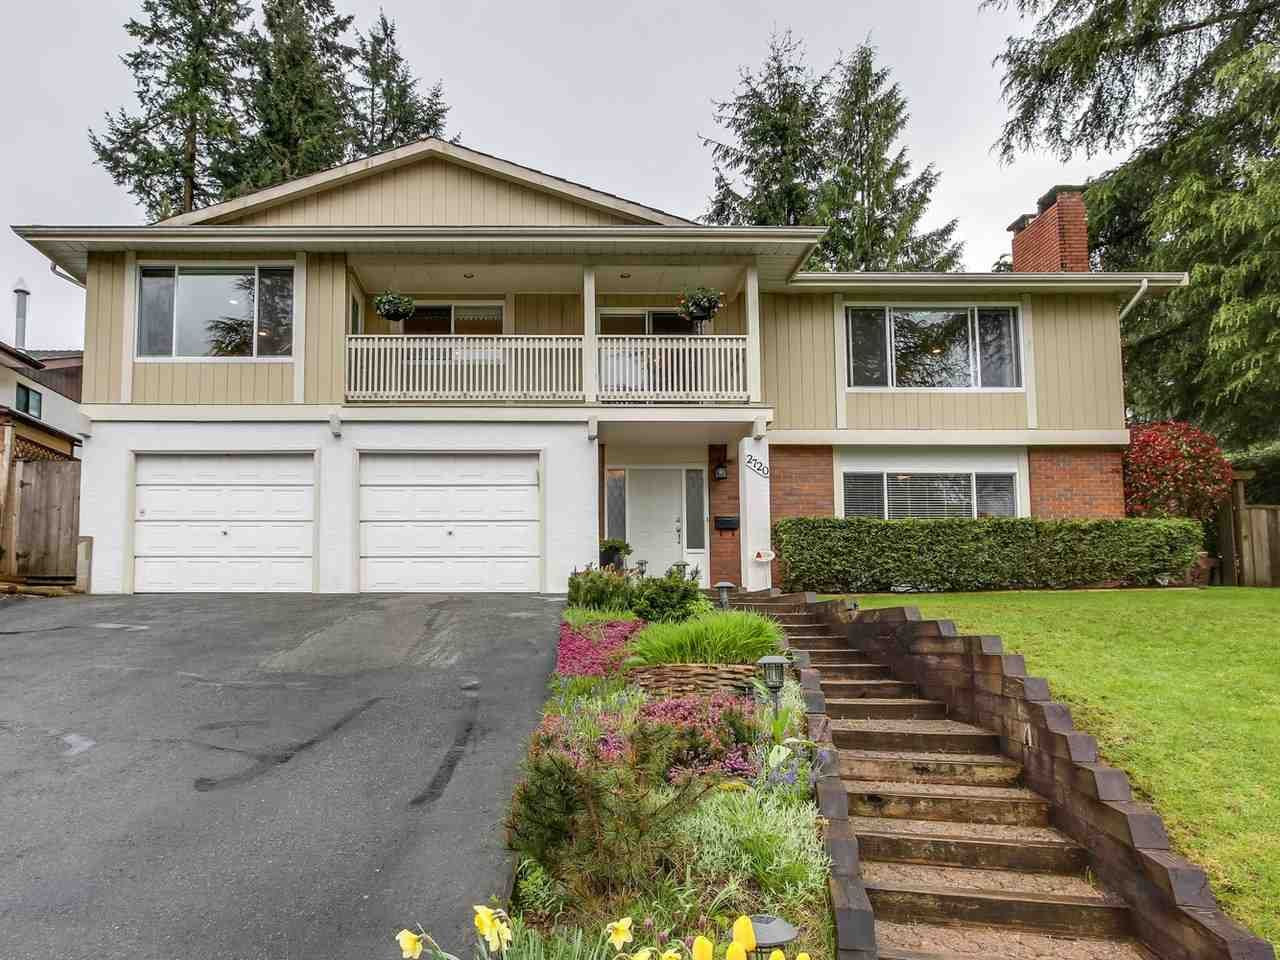 Photo 1: Photos: 2720 HAWSER Avenue in Coquitlam: Ranch Park House for sale : MLS®# R2161090